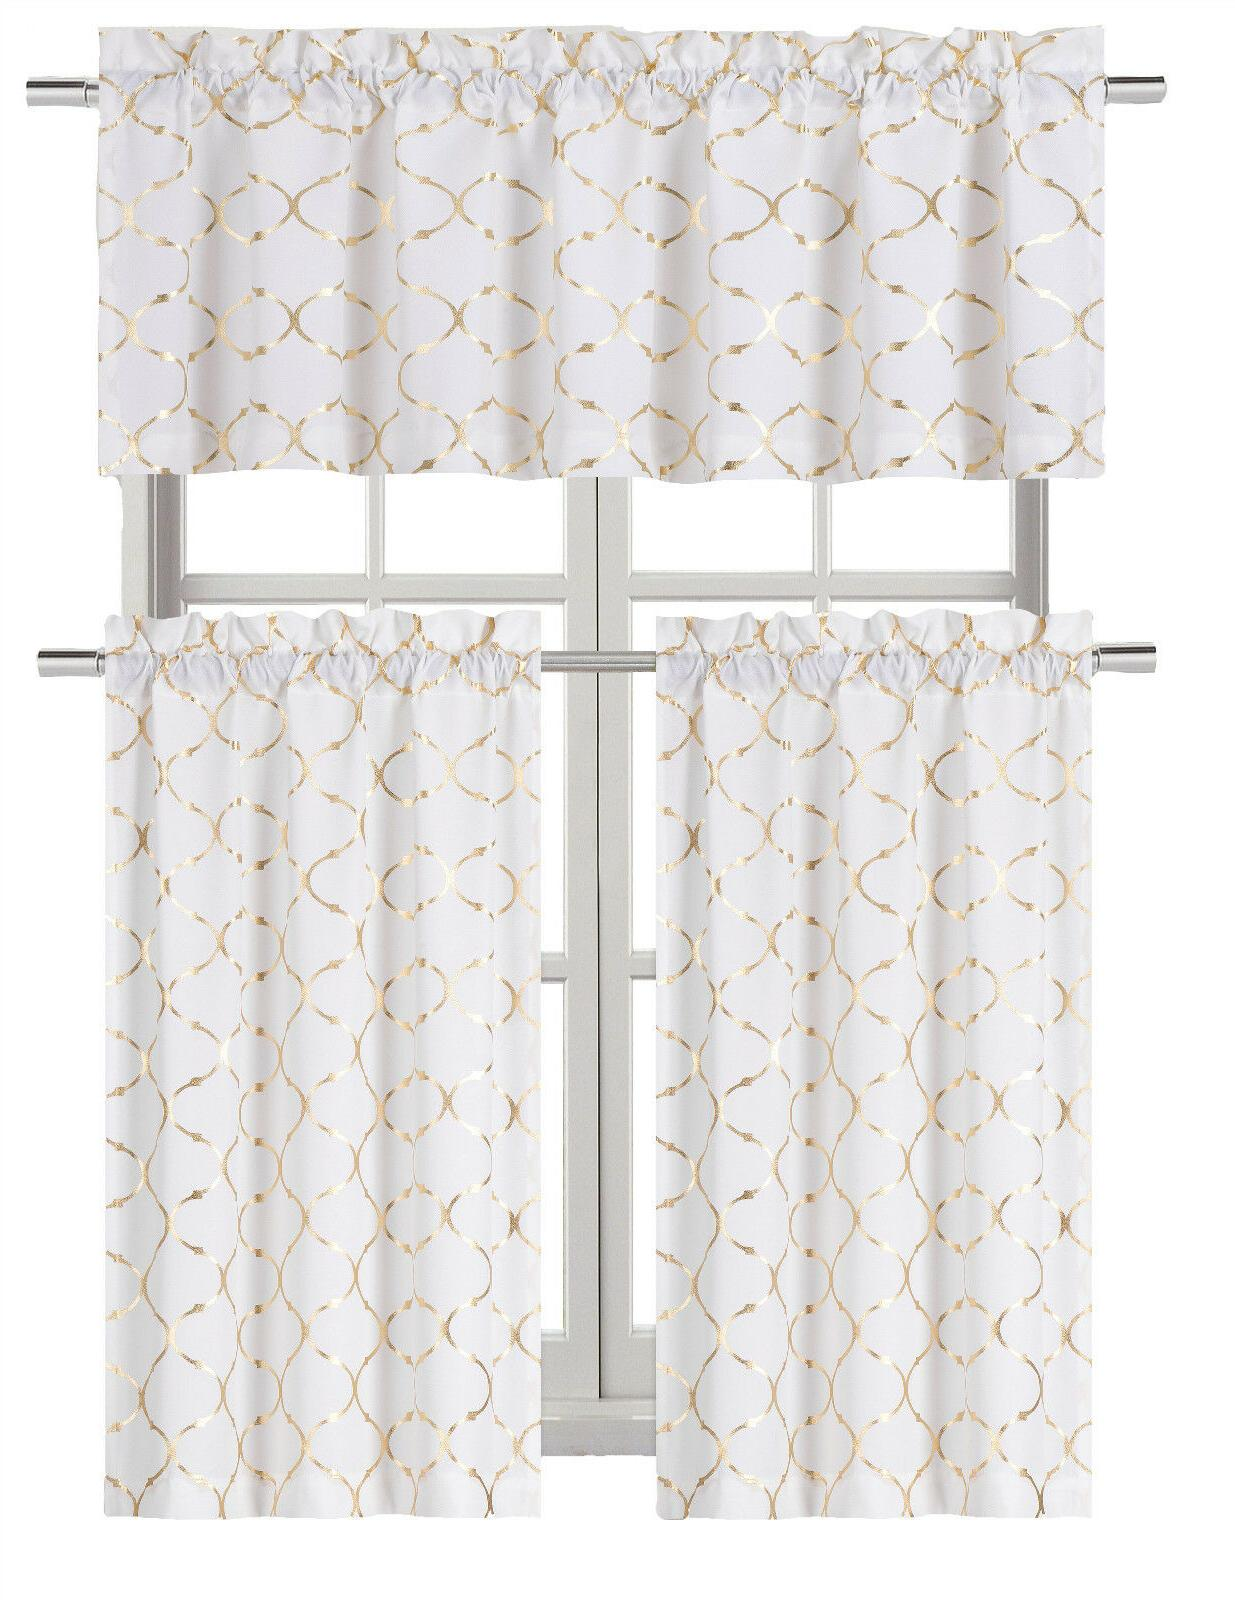 Metallic Lattice Kitchen Curtain & Set